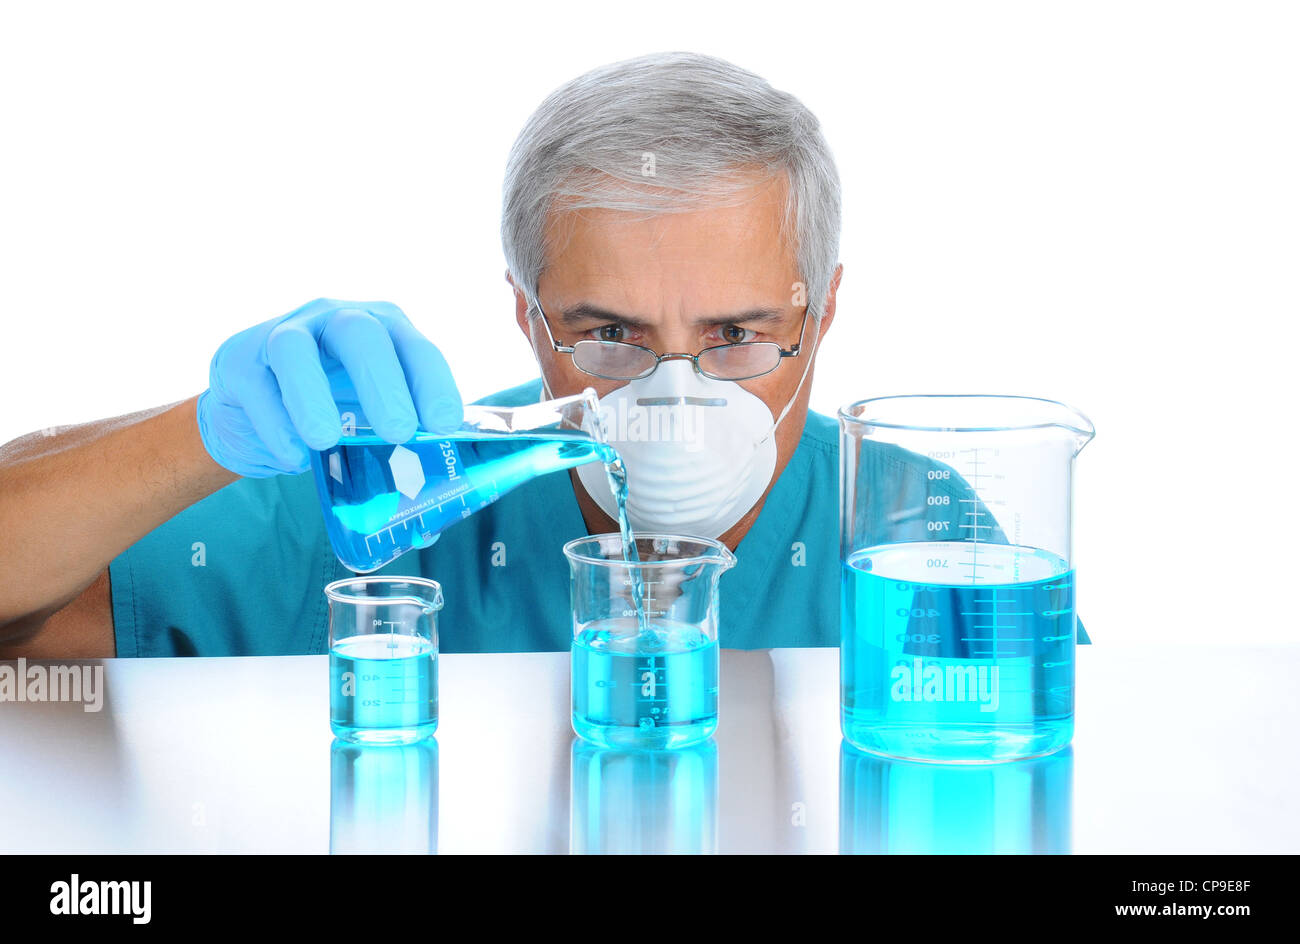 Scientist pouring measuring liquids in assorted beakers. Horizontal format over white background. - Stock Image